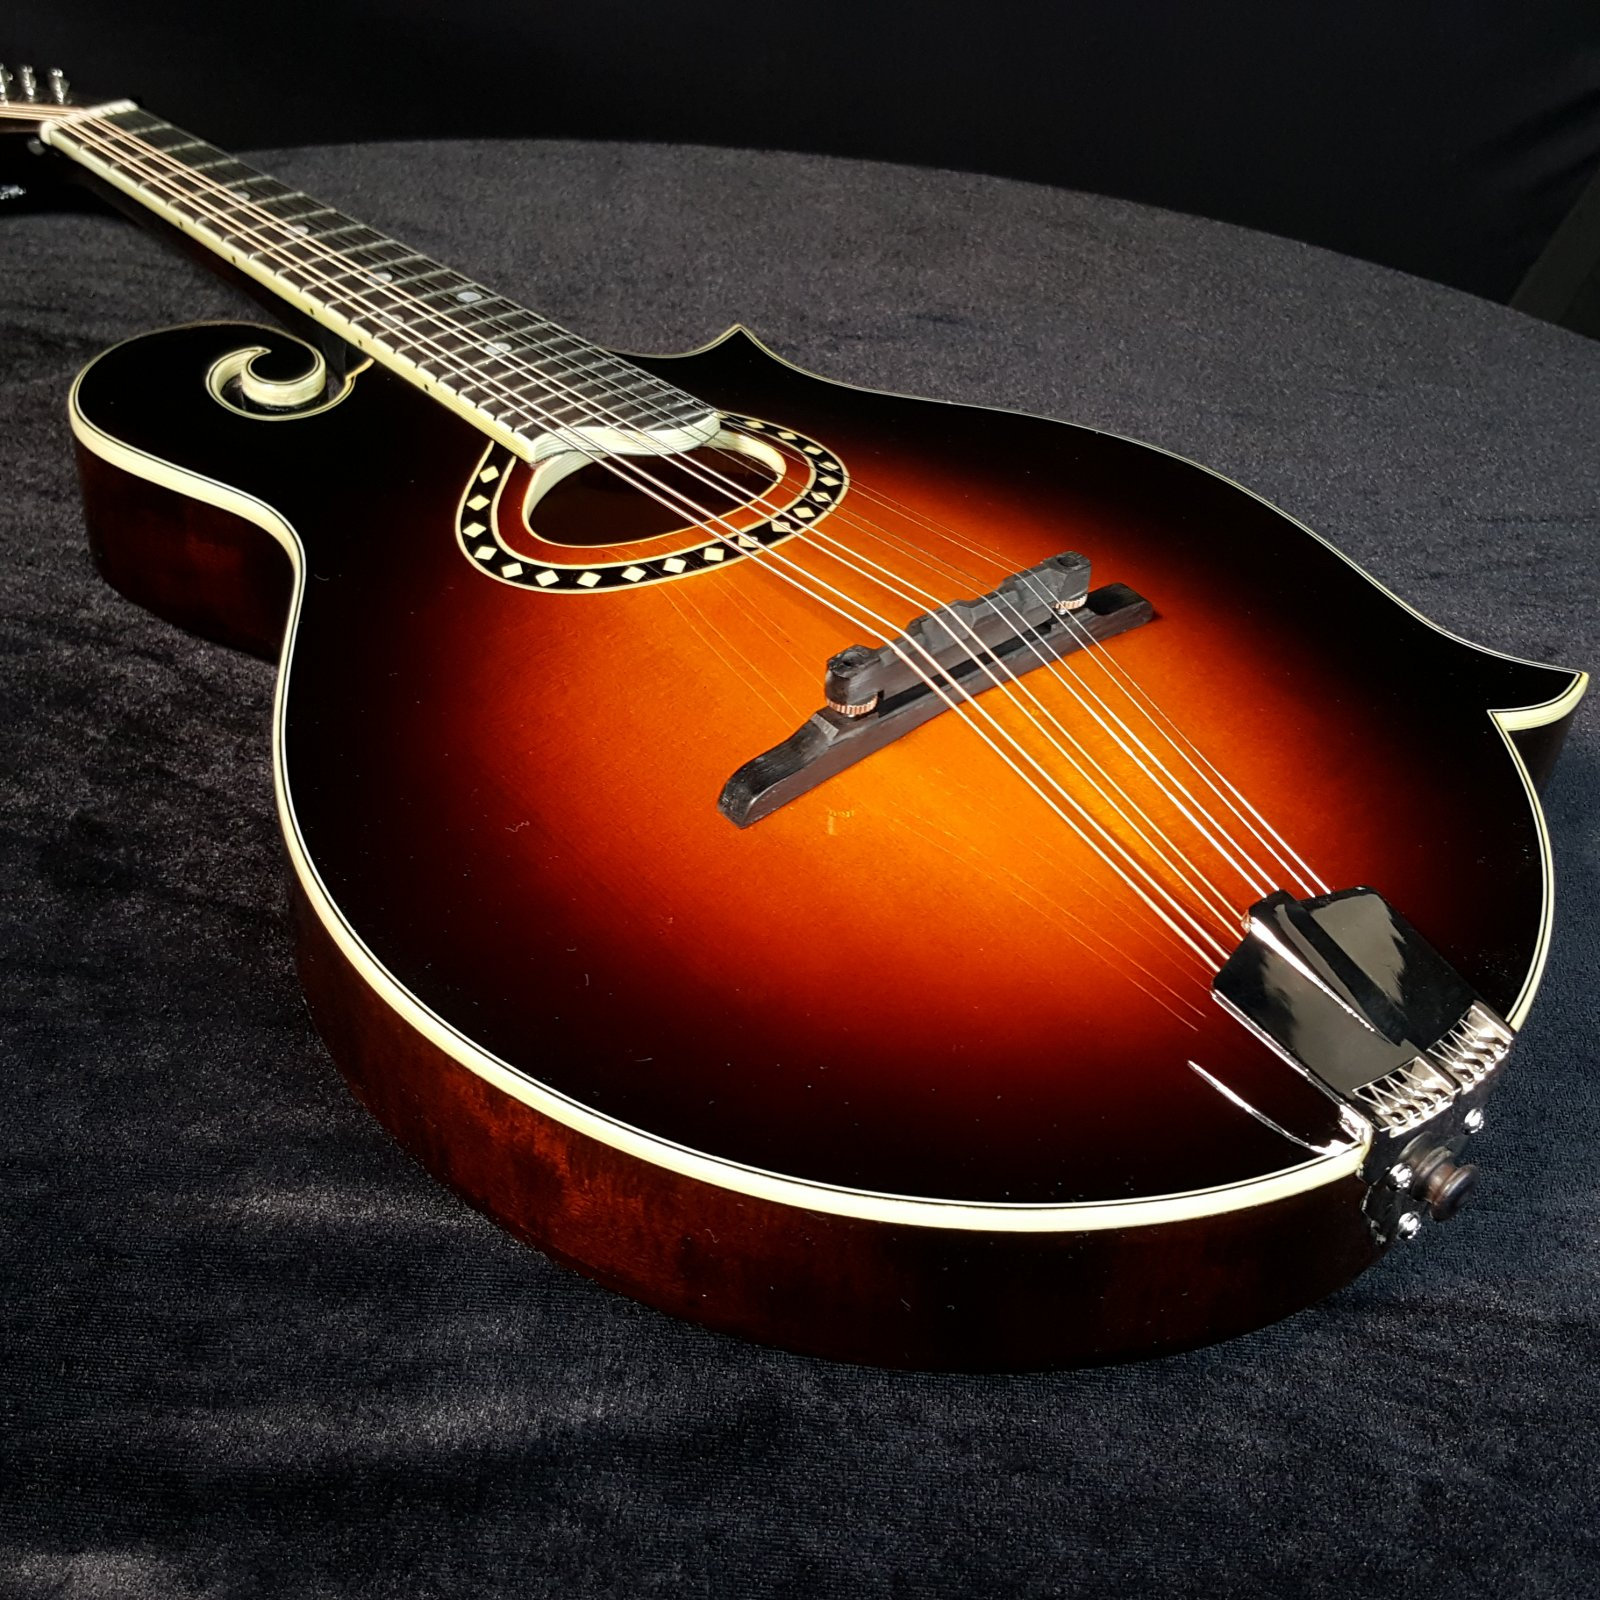 Eastman MD514 F-Style Mandolin in the Classic Sunburst Finish